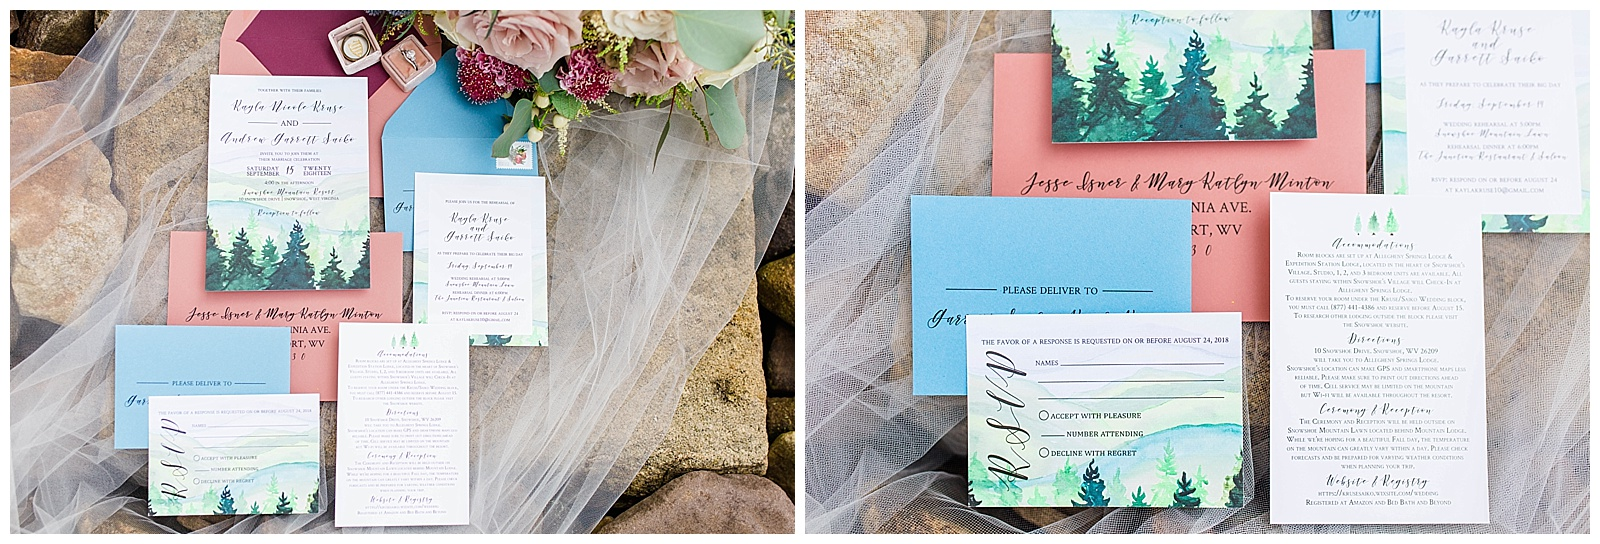 These beautiful invitations were executed by Rock Paper Sisters and the mountains for the background were hand painted by the Bride's mom!!